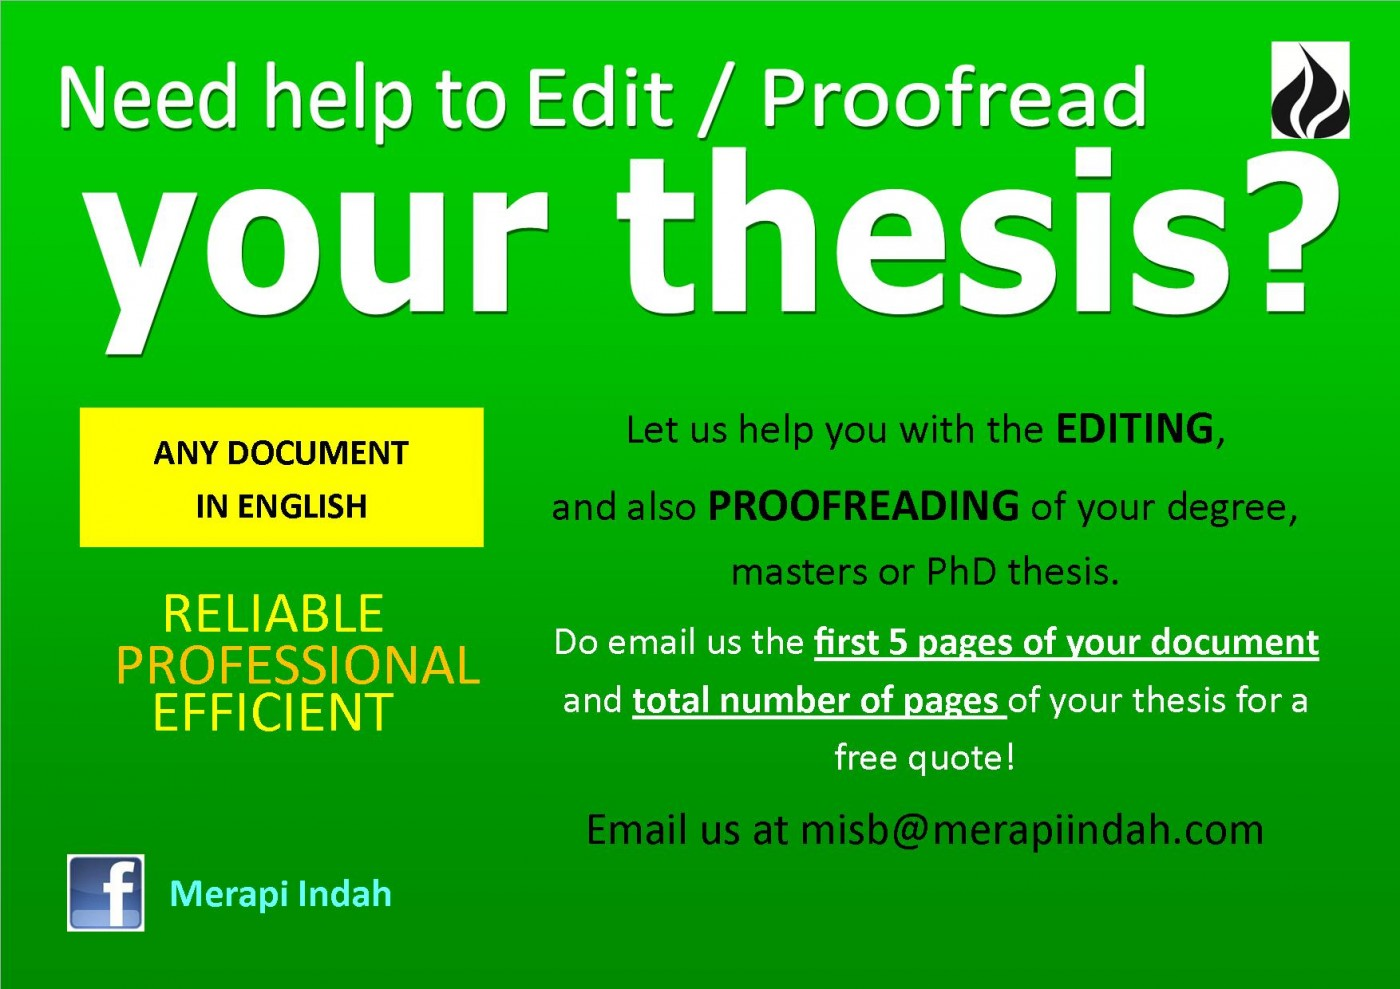 019 Essay Example Editor Misb Editing Proofreading Flyer Thesis Marvelous Free Service Corrector Generator Job 1400